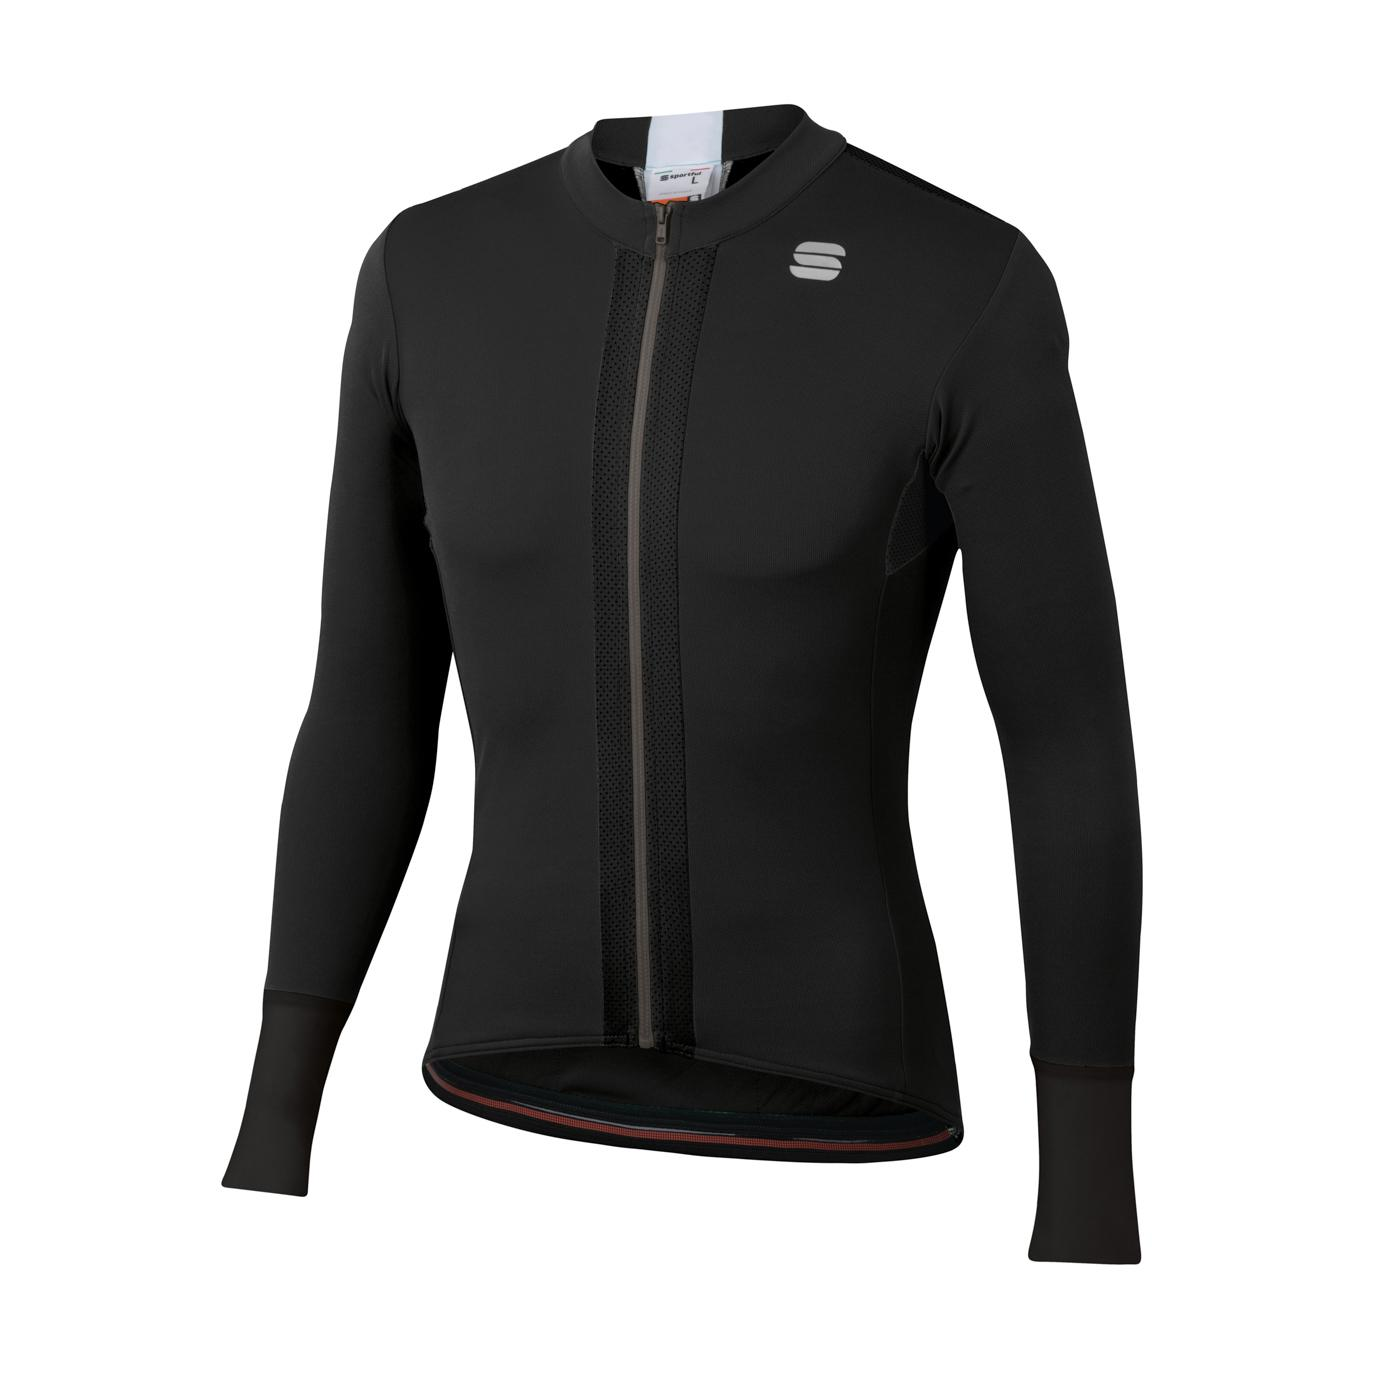 Sportful Fietsshirt Lange mouwen voor Heren Zwart Wit - SF Strike Long Sleeve Jersey-Black White